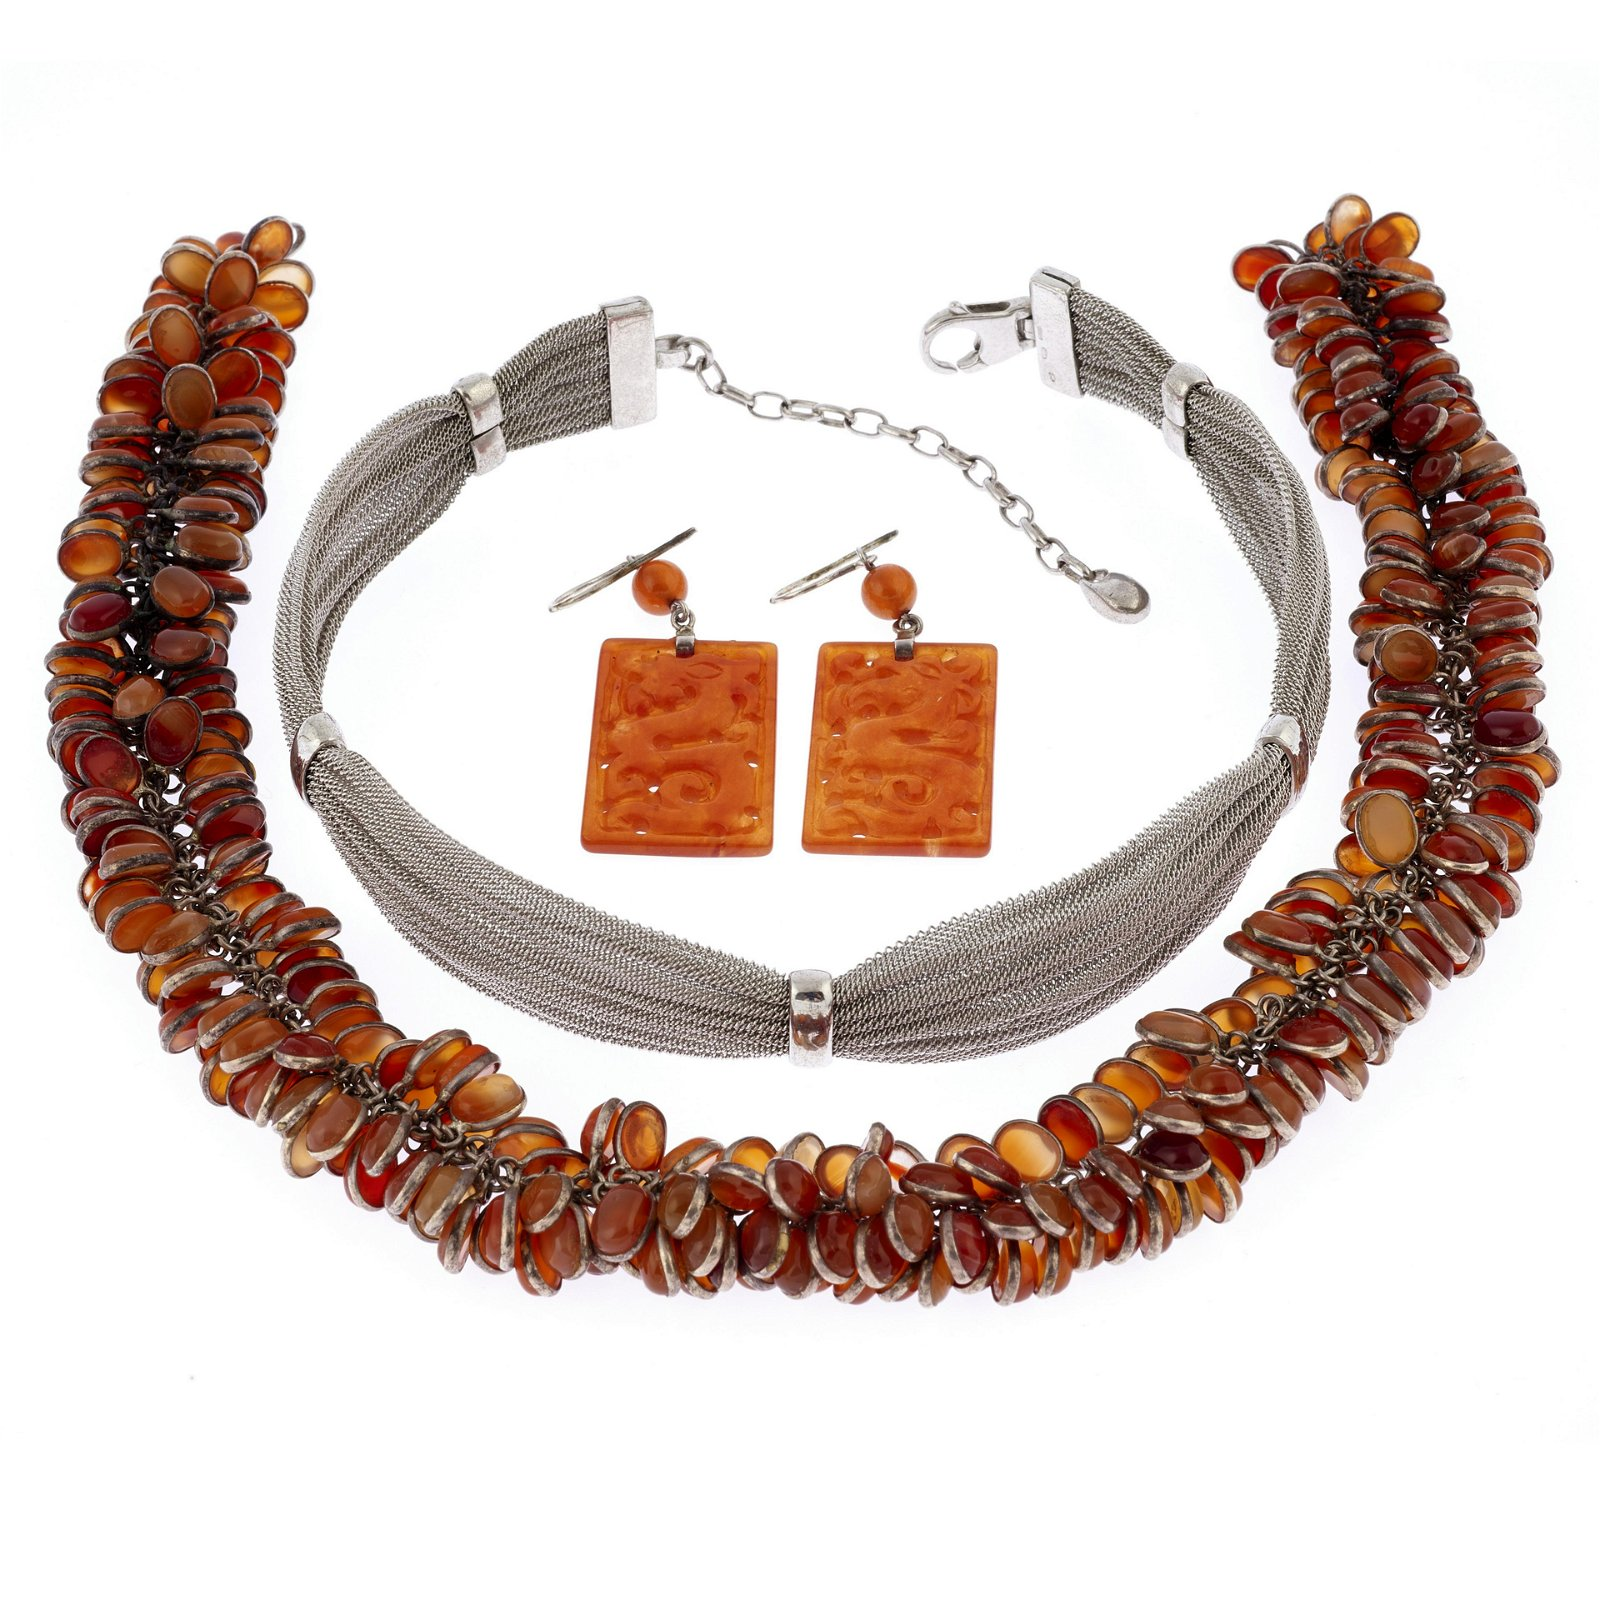 A collection of carnelian, silver jewelry items